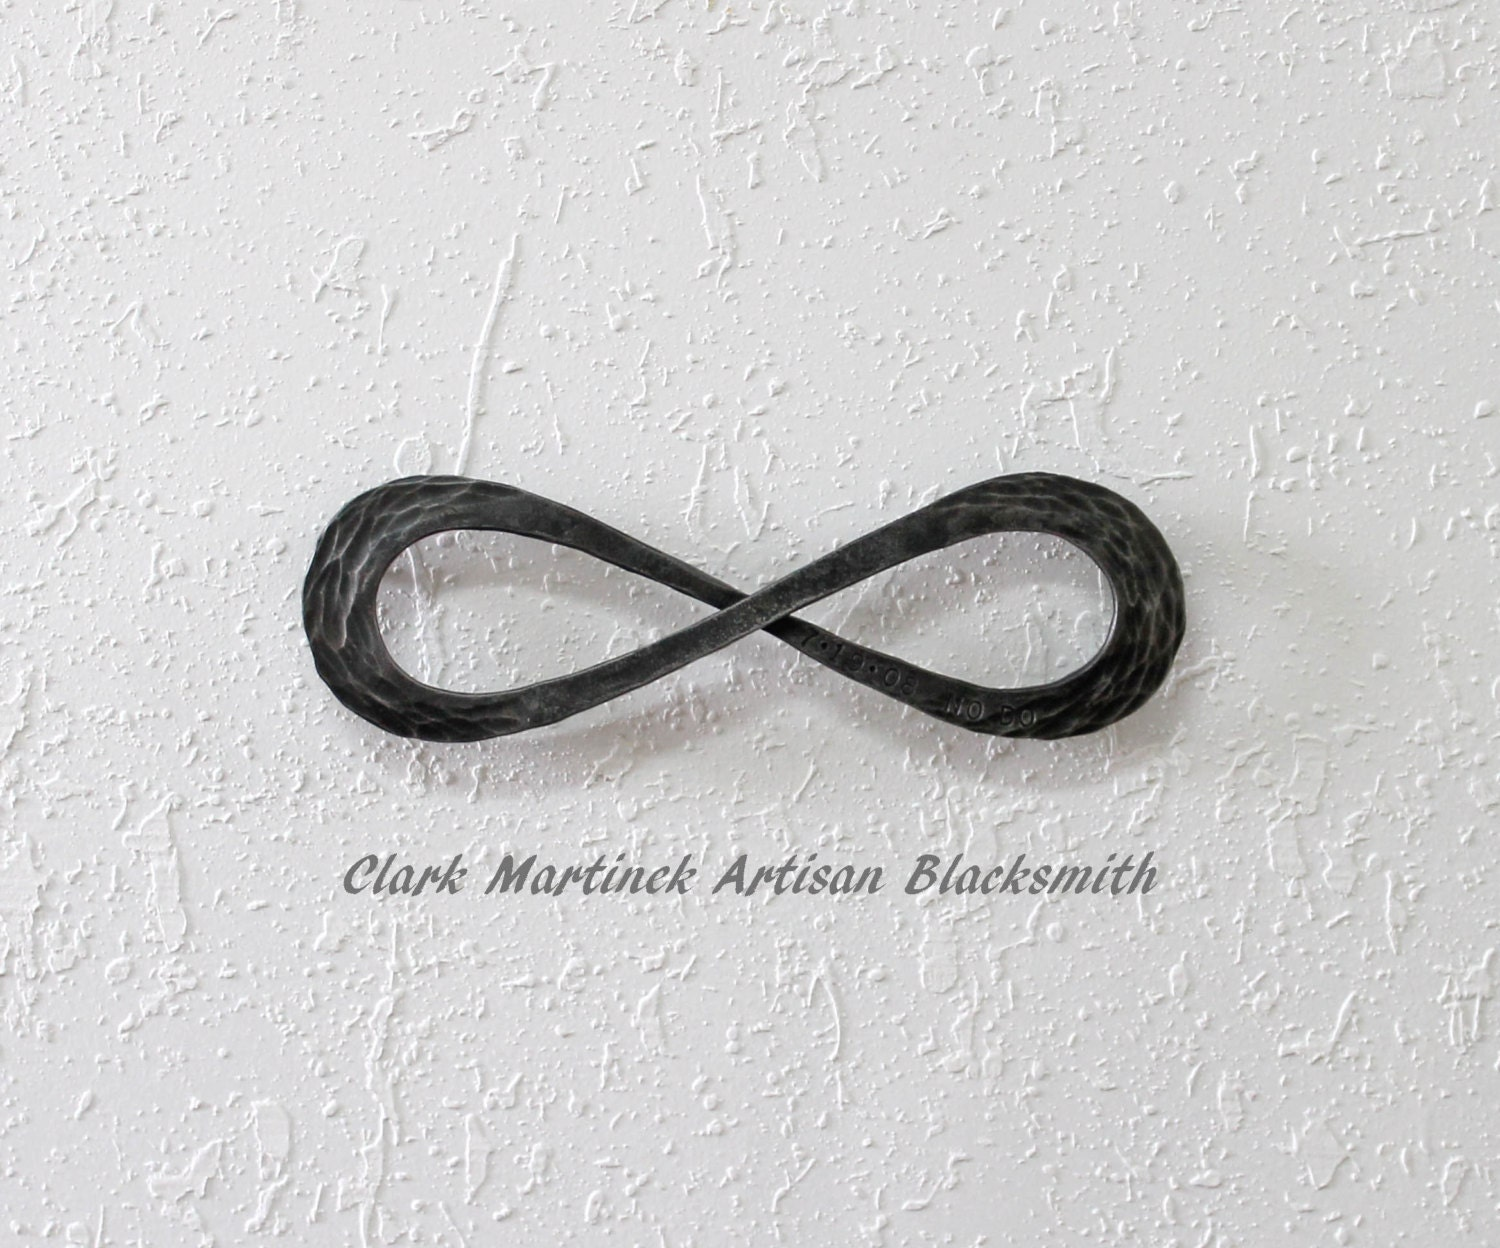 Infinity symbol anniversary gift for years of marriage